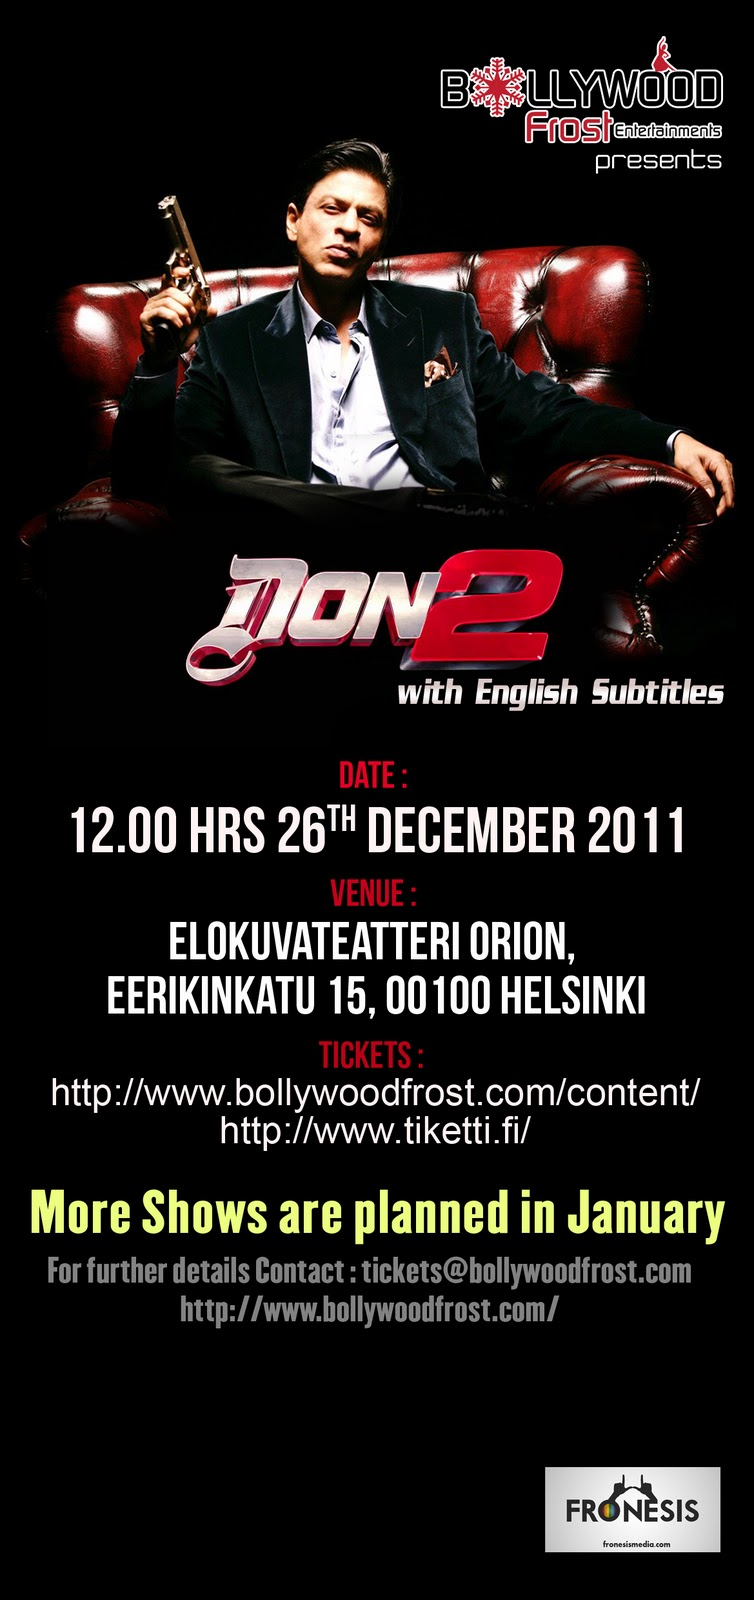 Bollywood: Get your tickets to the Bollywood film Don 2 now!